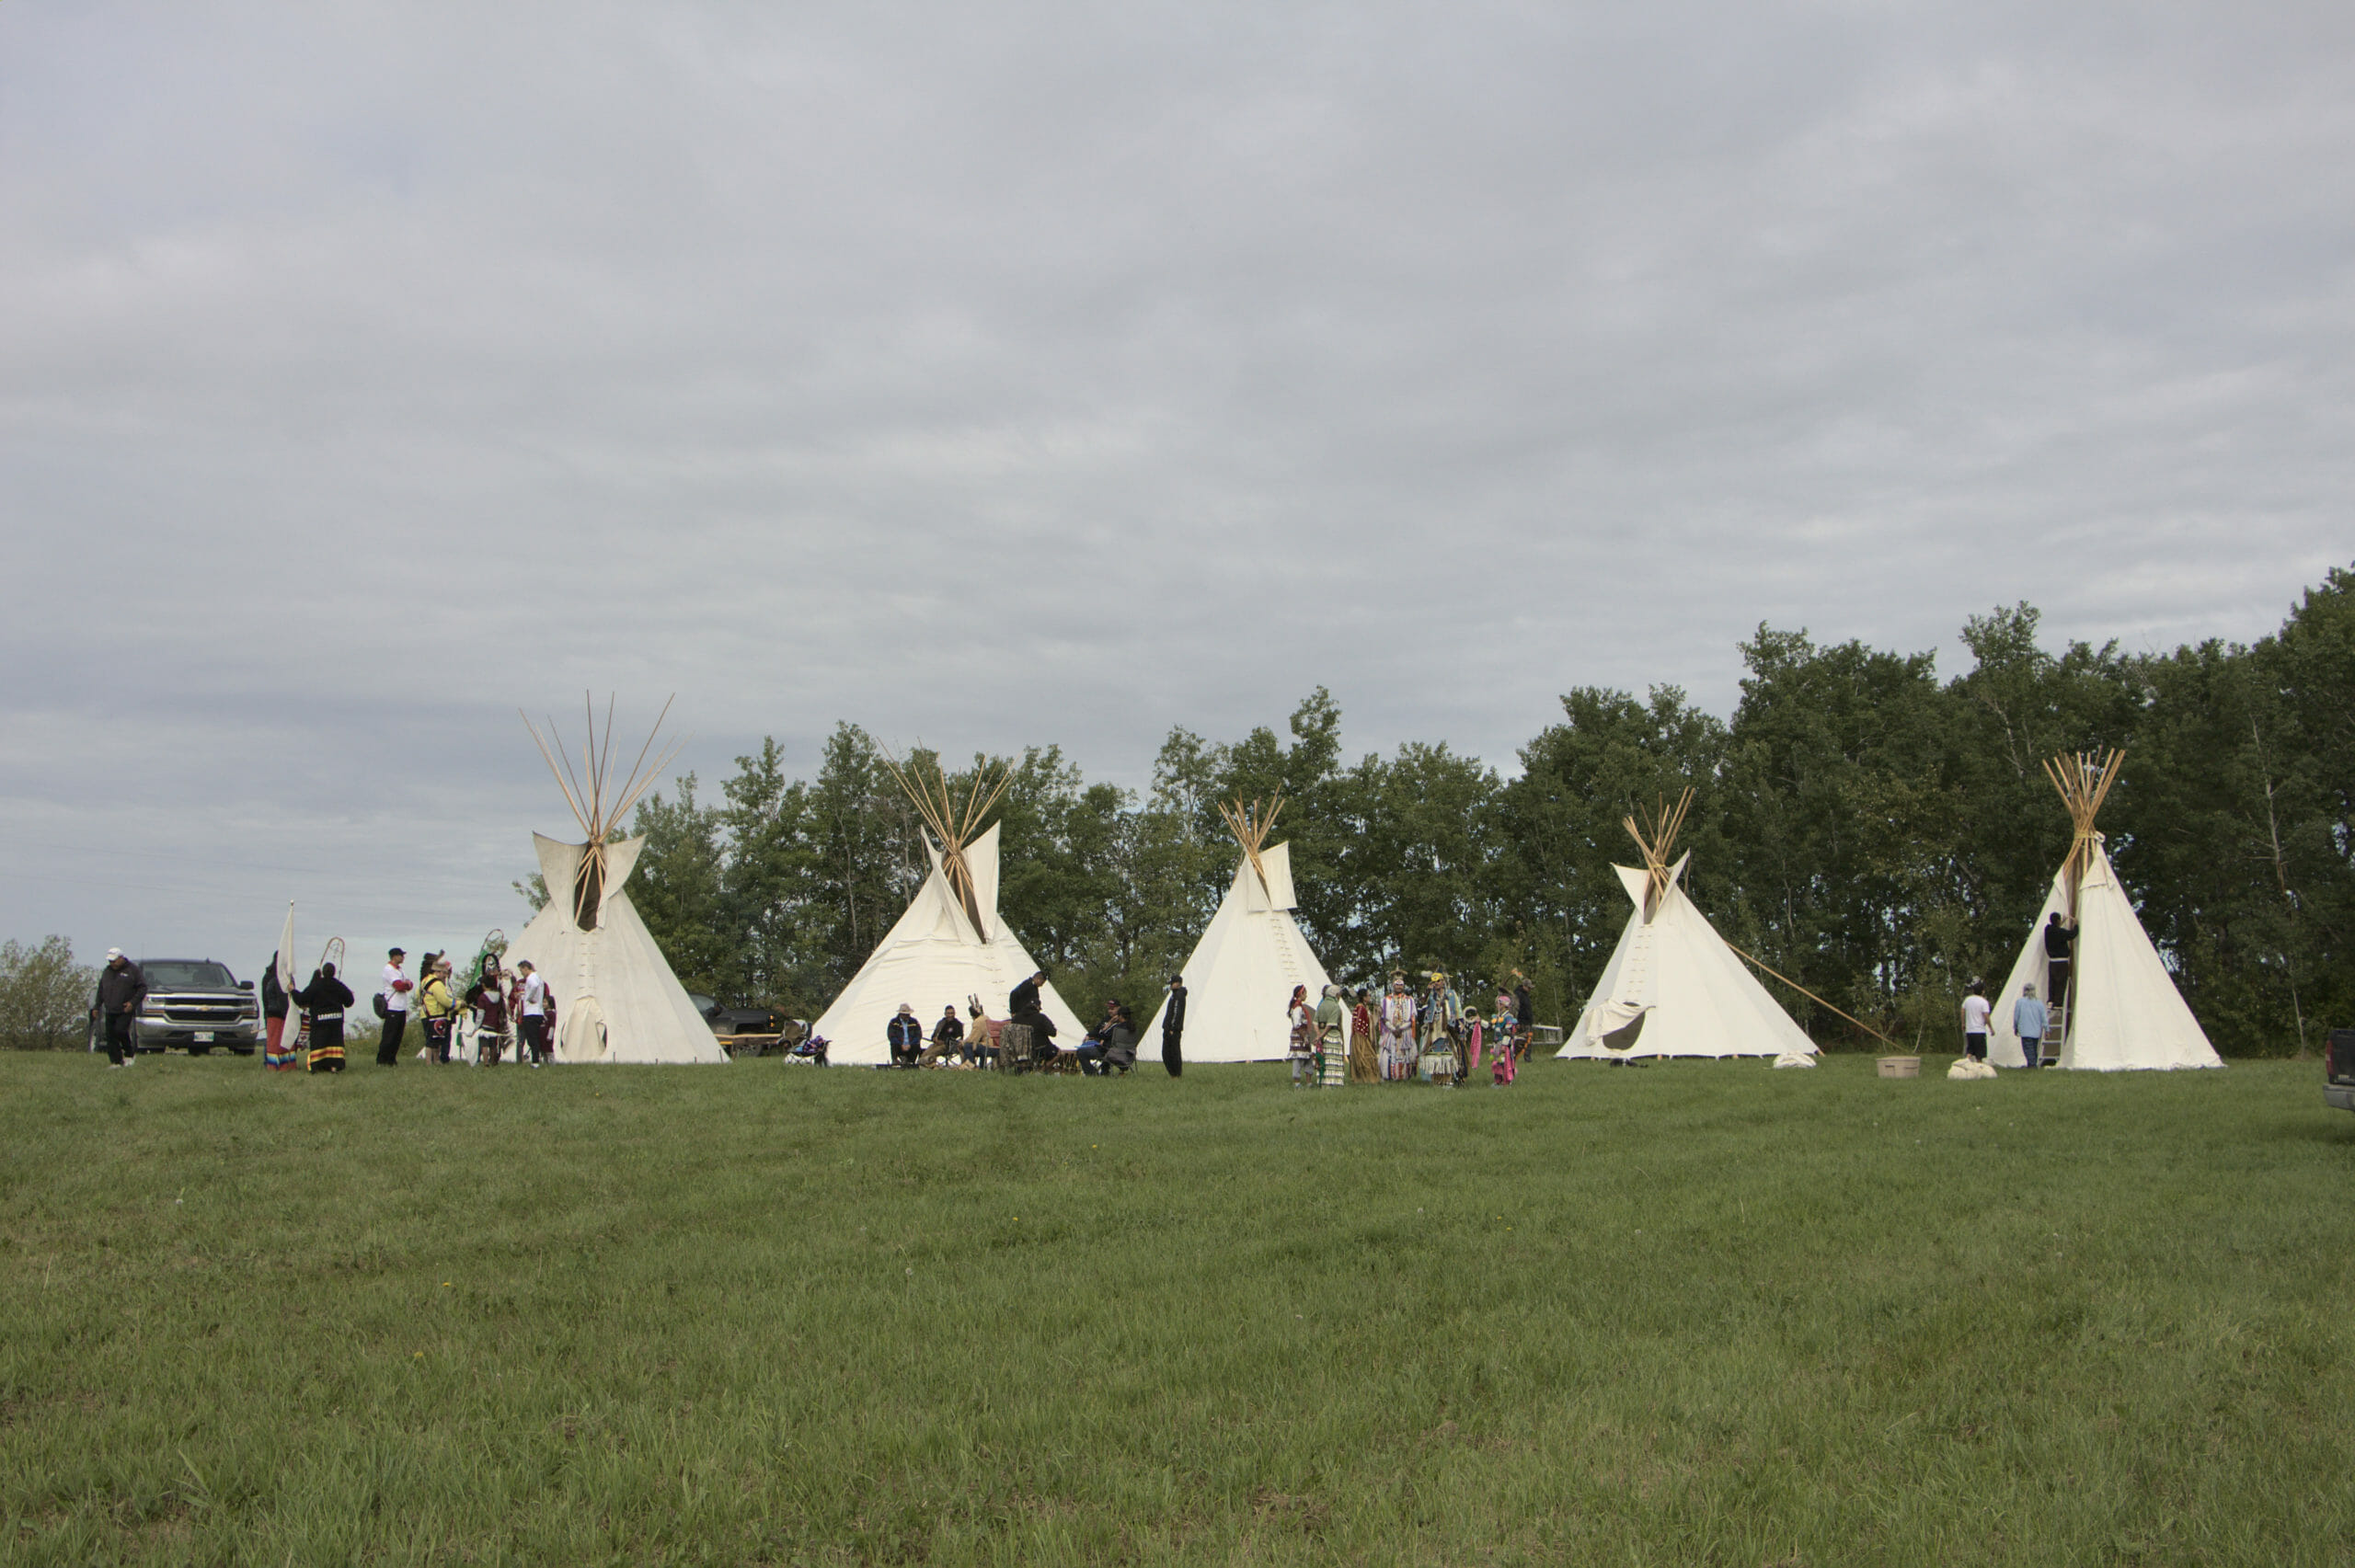 Five teepees set up and people dressed for ceremony